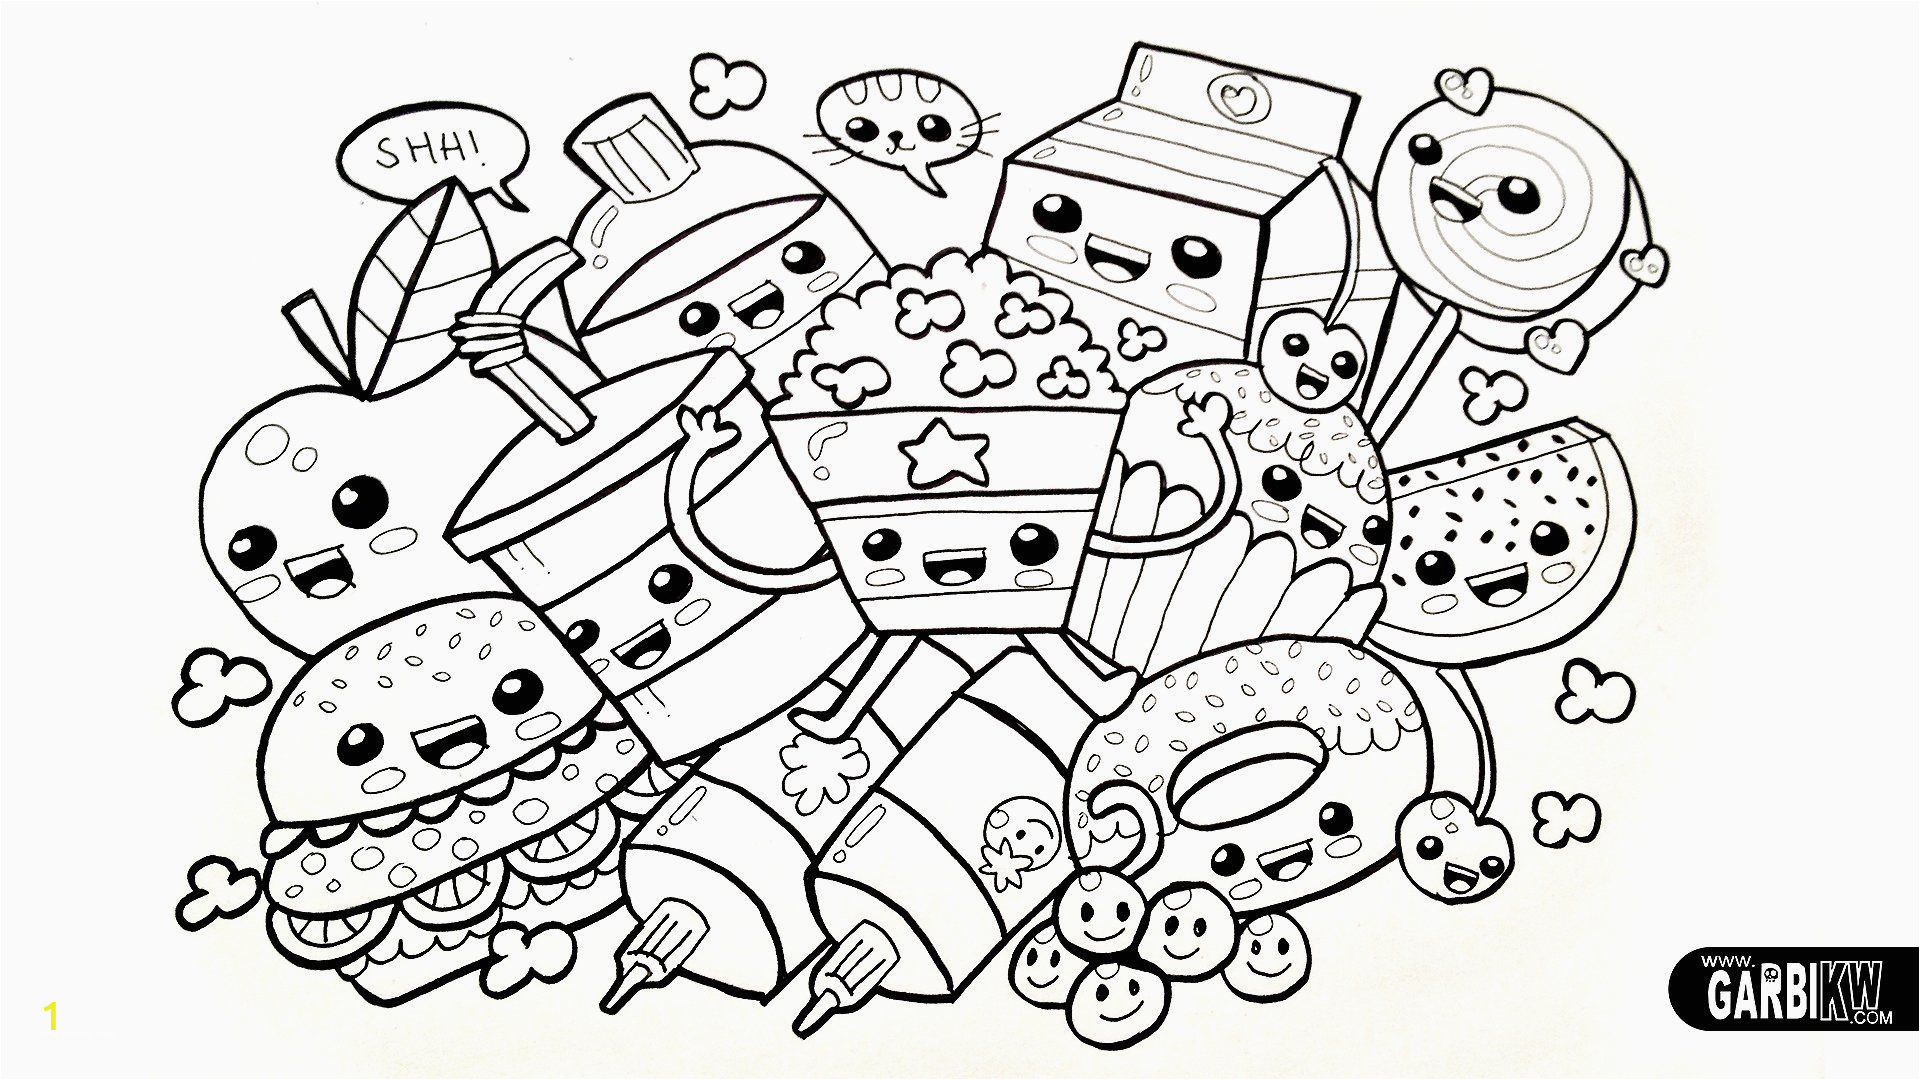 coloring pages for middle school students best of coloring pages cartoons printable in 2020 of coloring pages for middle school students